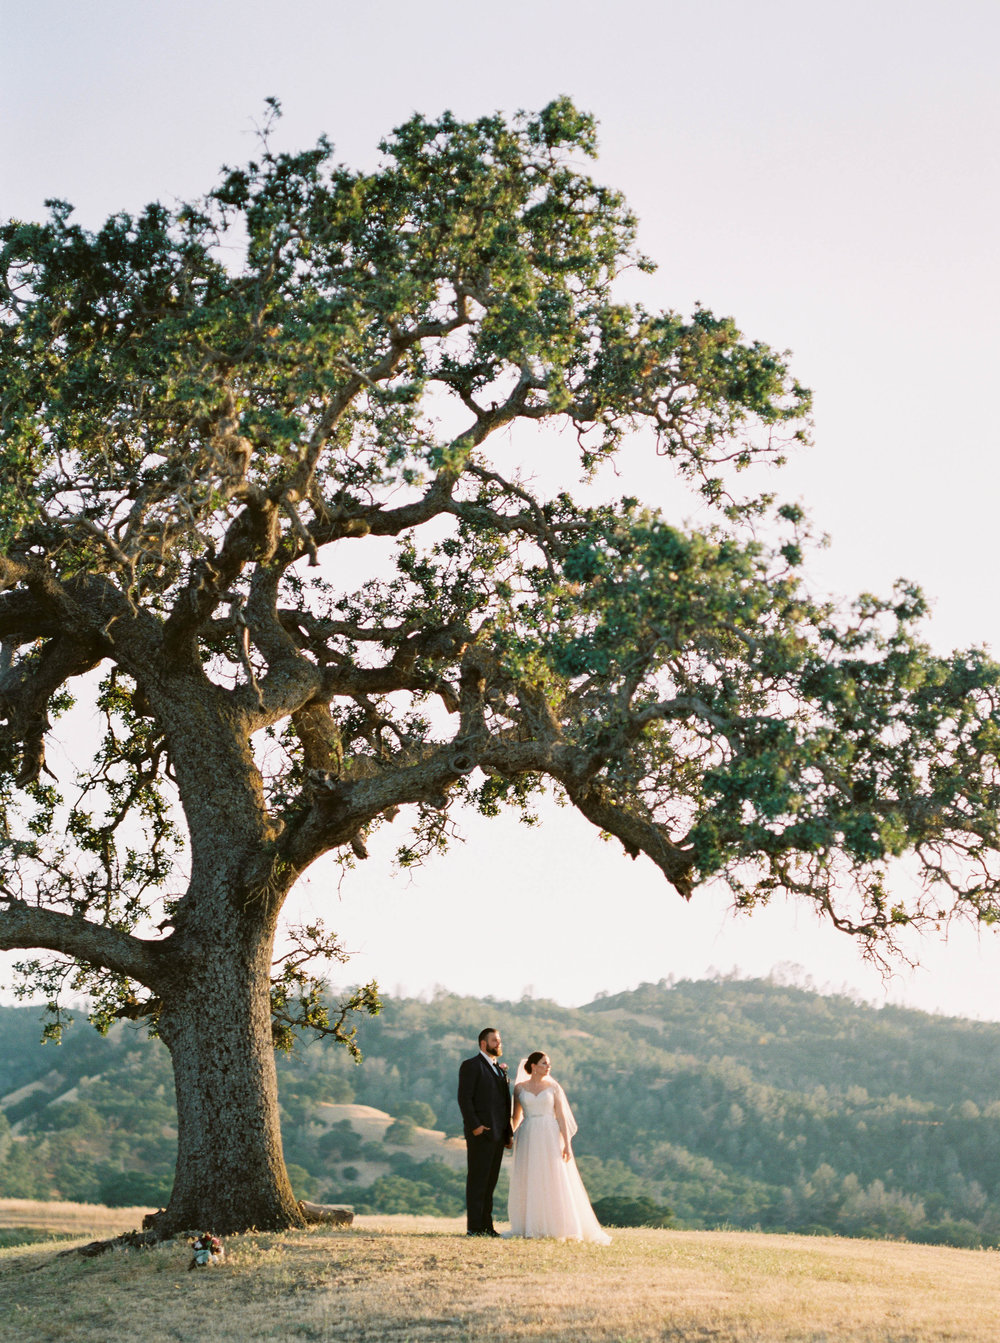 DennisRoyCoronel_Photography_taberranch_Wedding-12.jpg